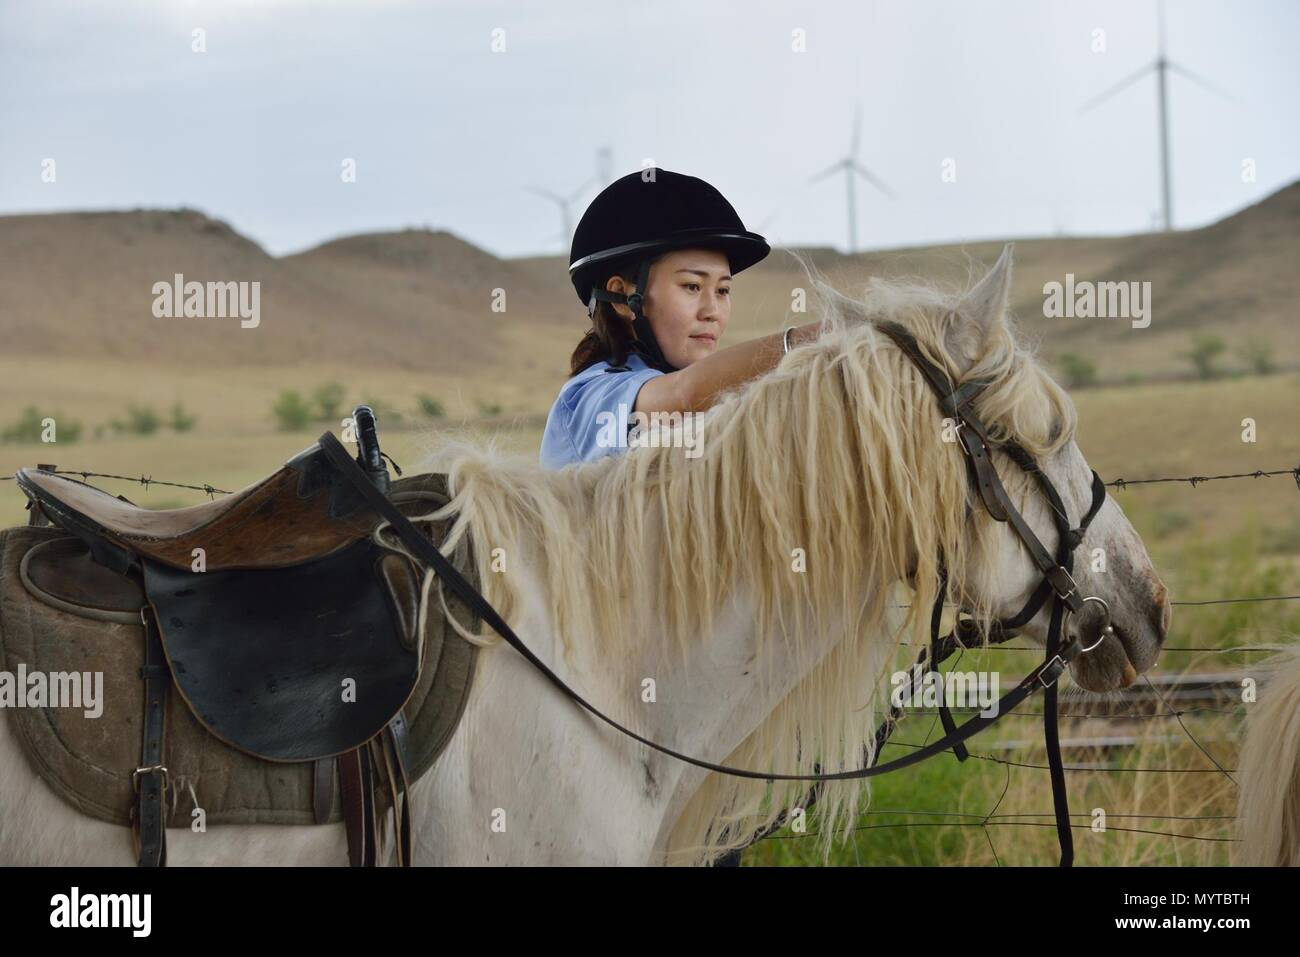 (180608) -- XILINHOT, June 8, 2018 (Xinhua) -- A mounted policewoman prepares her horse while patrolling along railroad in Xilinhot, north China's Inner Mongolia Autonomous Region, June 7, 2018. In order to keep railroads in operation, mounted police in Xilinhot are busy repairing broken safety net and checking livestock intrusion while patrolling along railroads. (Xinhua/Zou Yu) (wyl) - Stock Image